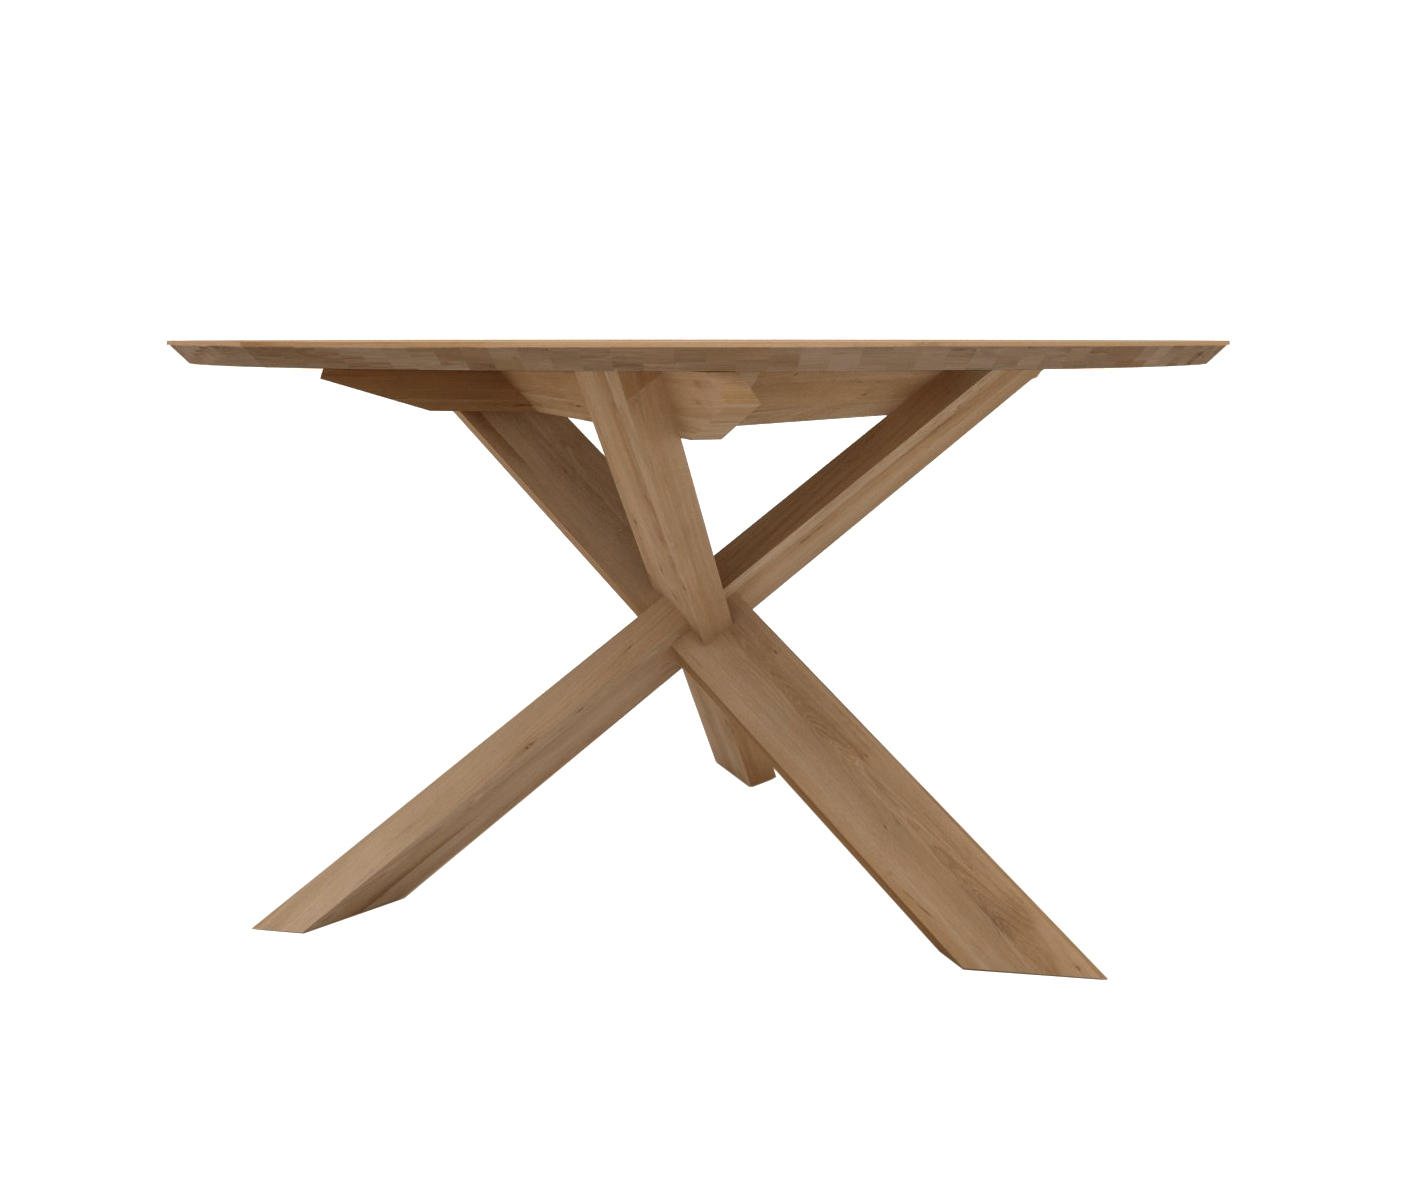 OAK CIRCLE DINING TABLE Dining Tables From Ethnicraft Architonic - Circular dining table with extension